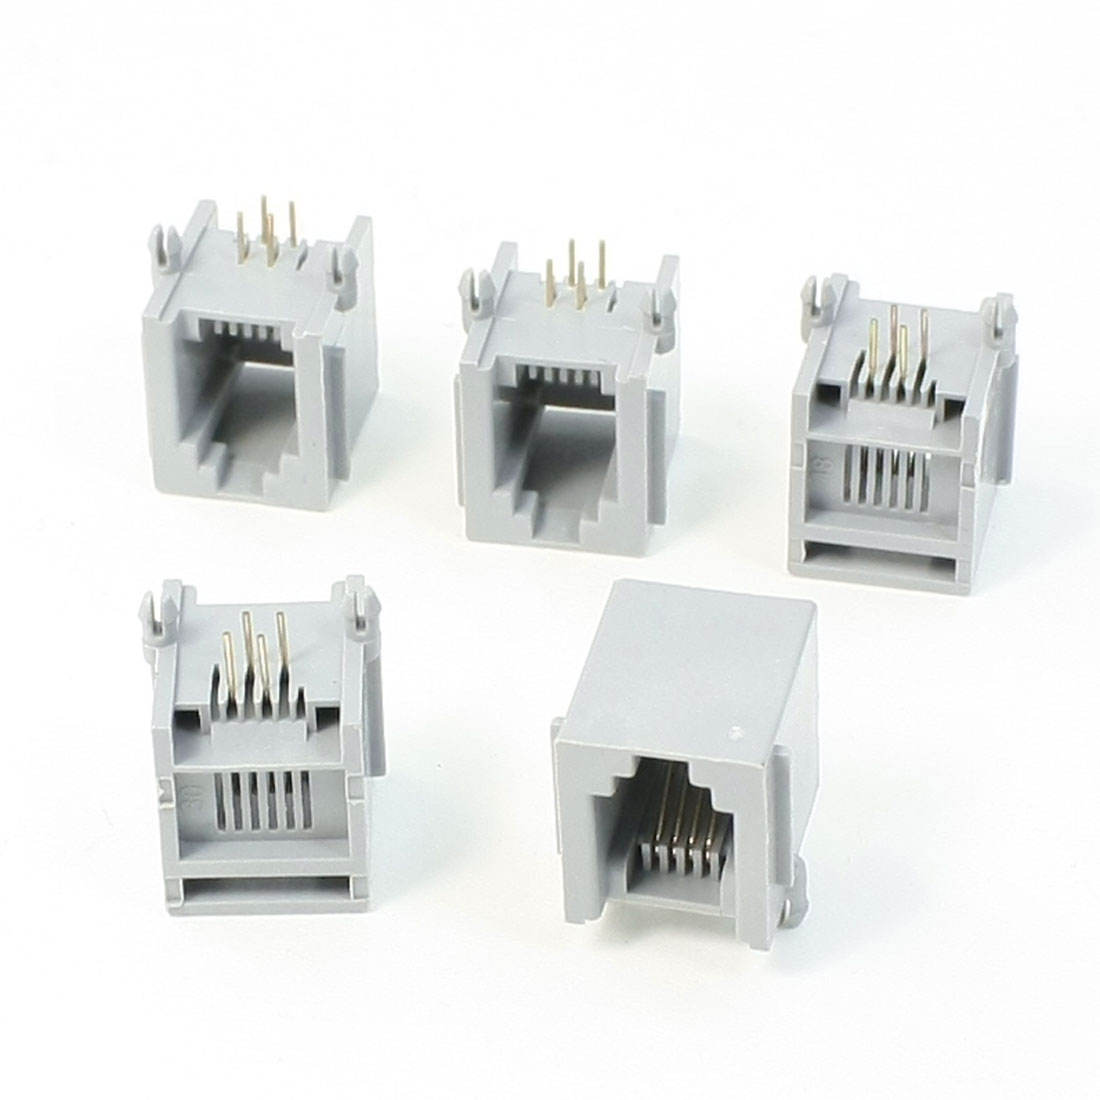 5 x RJ11 6P4C 6 Position 4 Contact PCB Jack Telephone Female Connector Gray